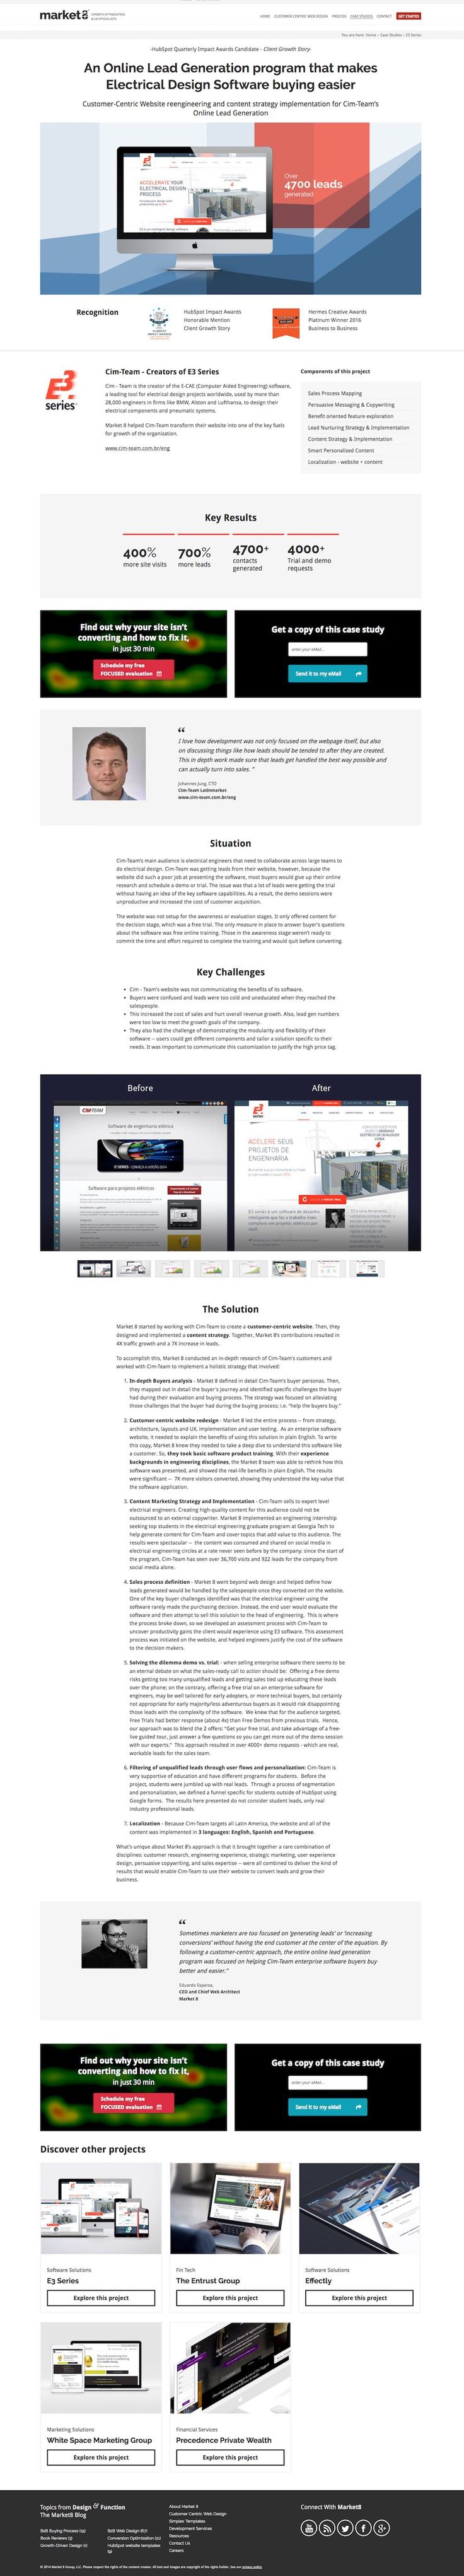 Case Study + Projects page for Market 8 - Single Page.jpg